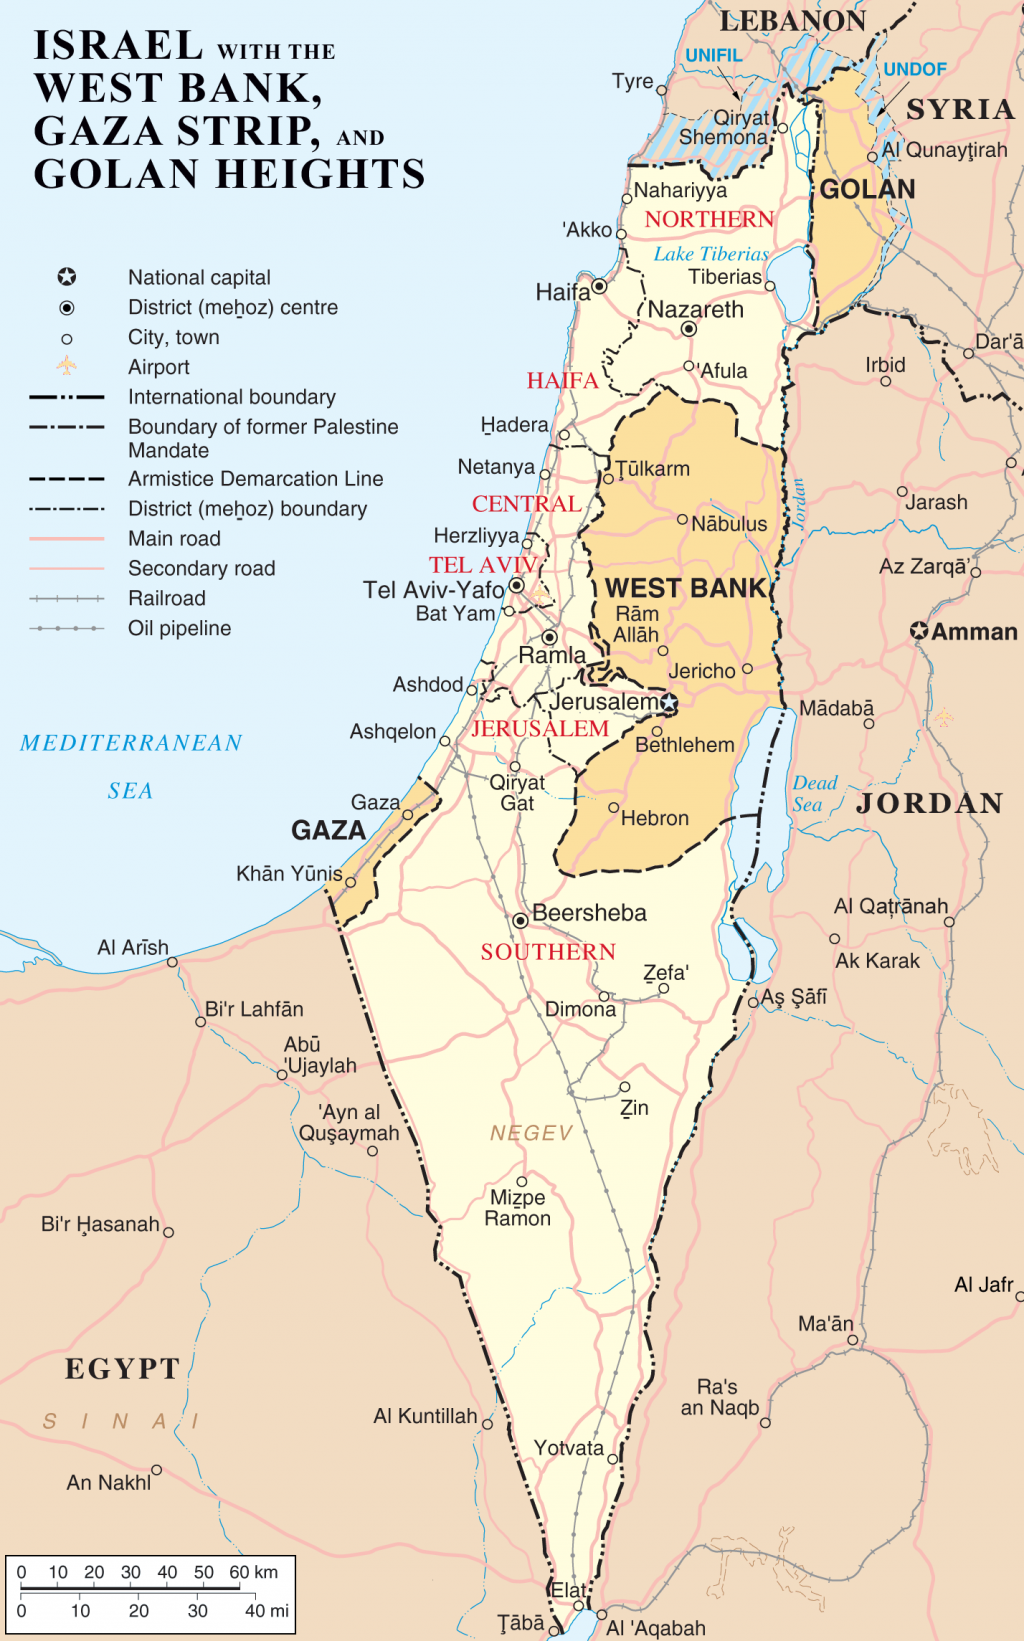 Map of Israel, the Palestinian territories (West Bank and Gaza Strip), the